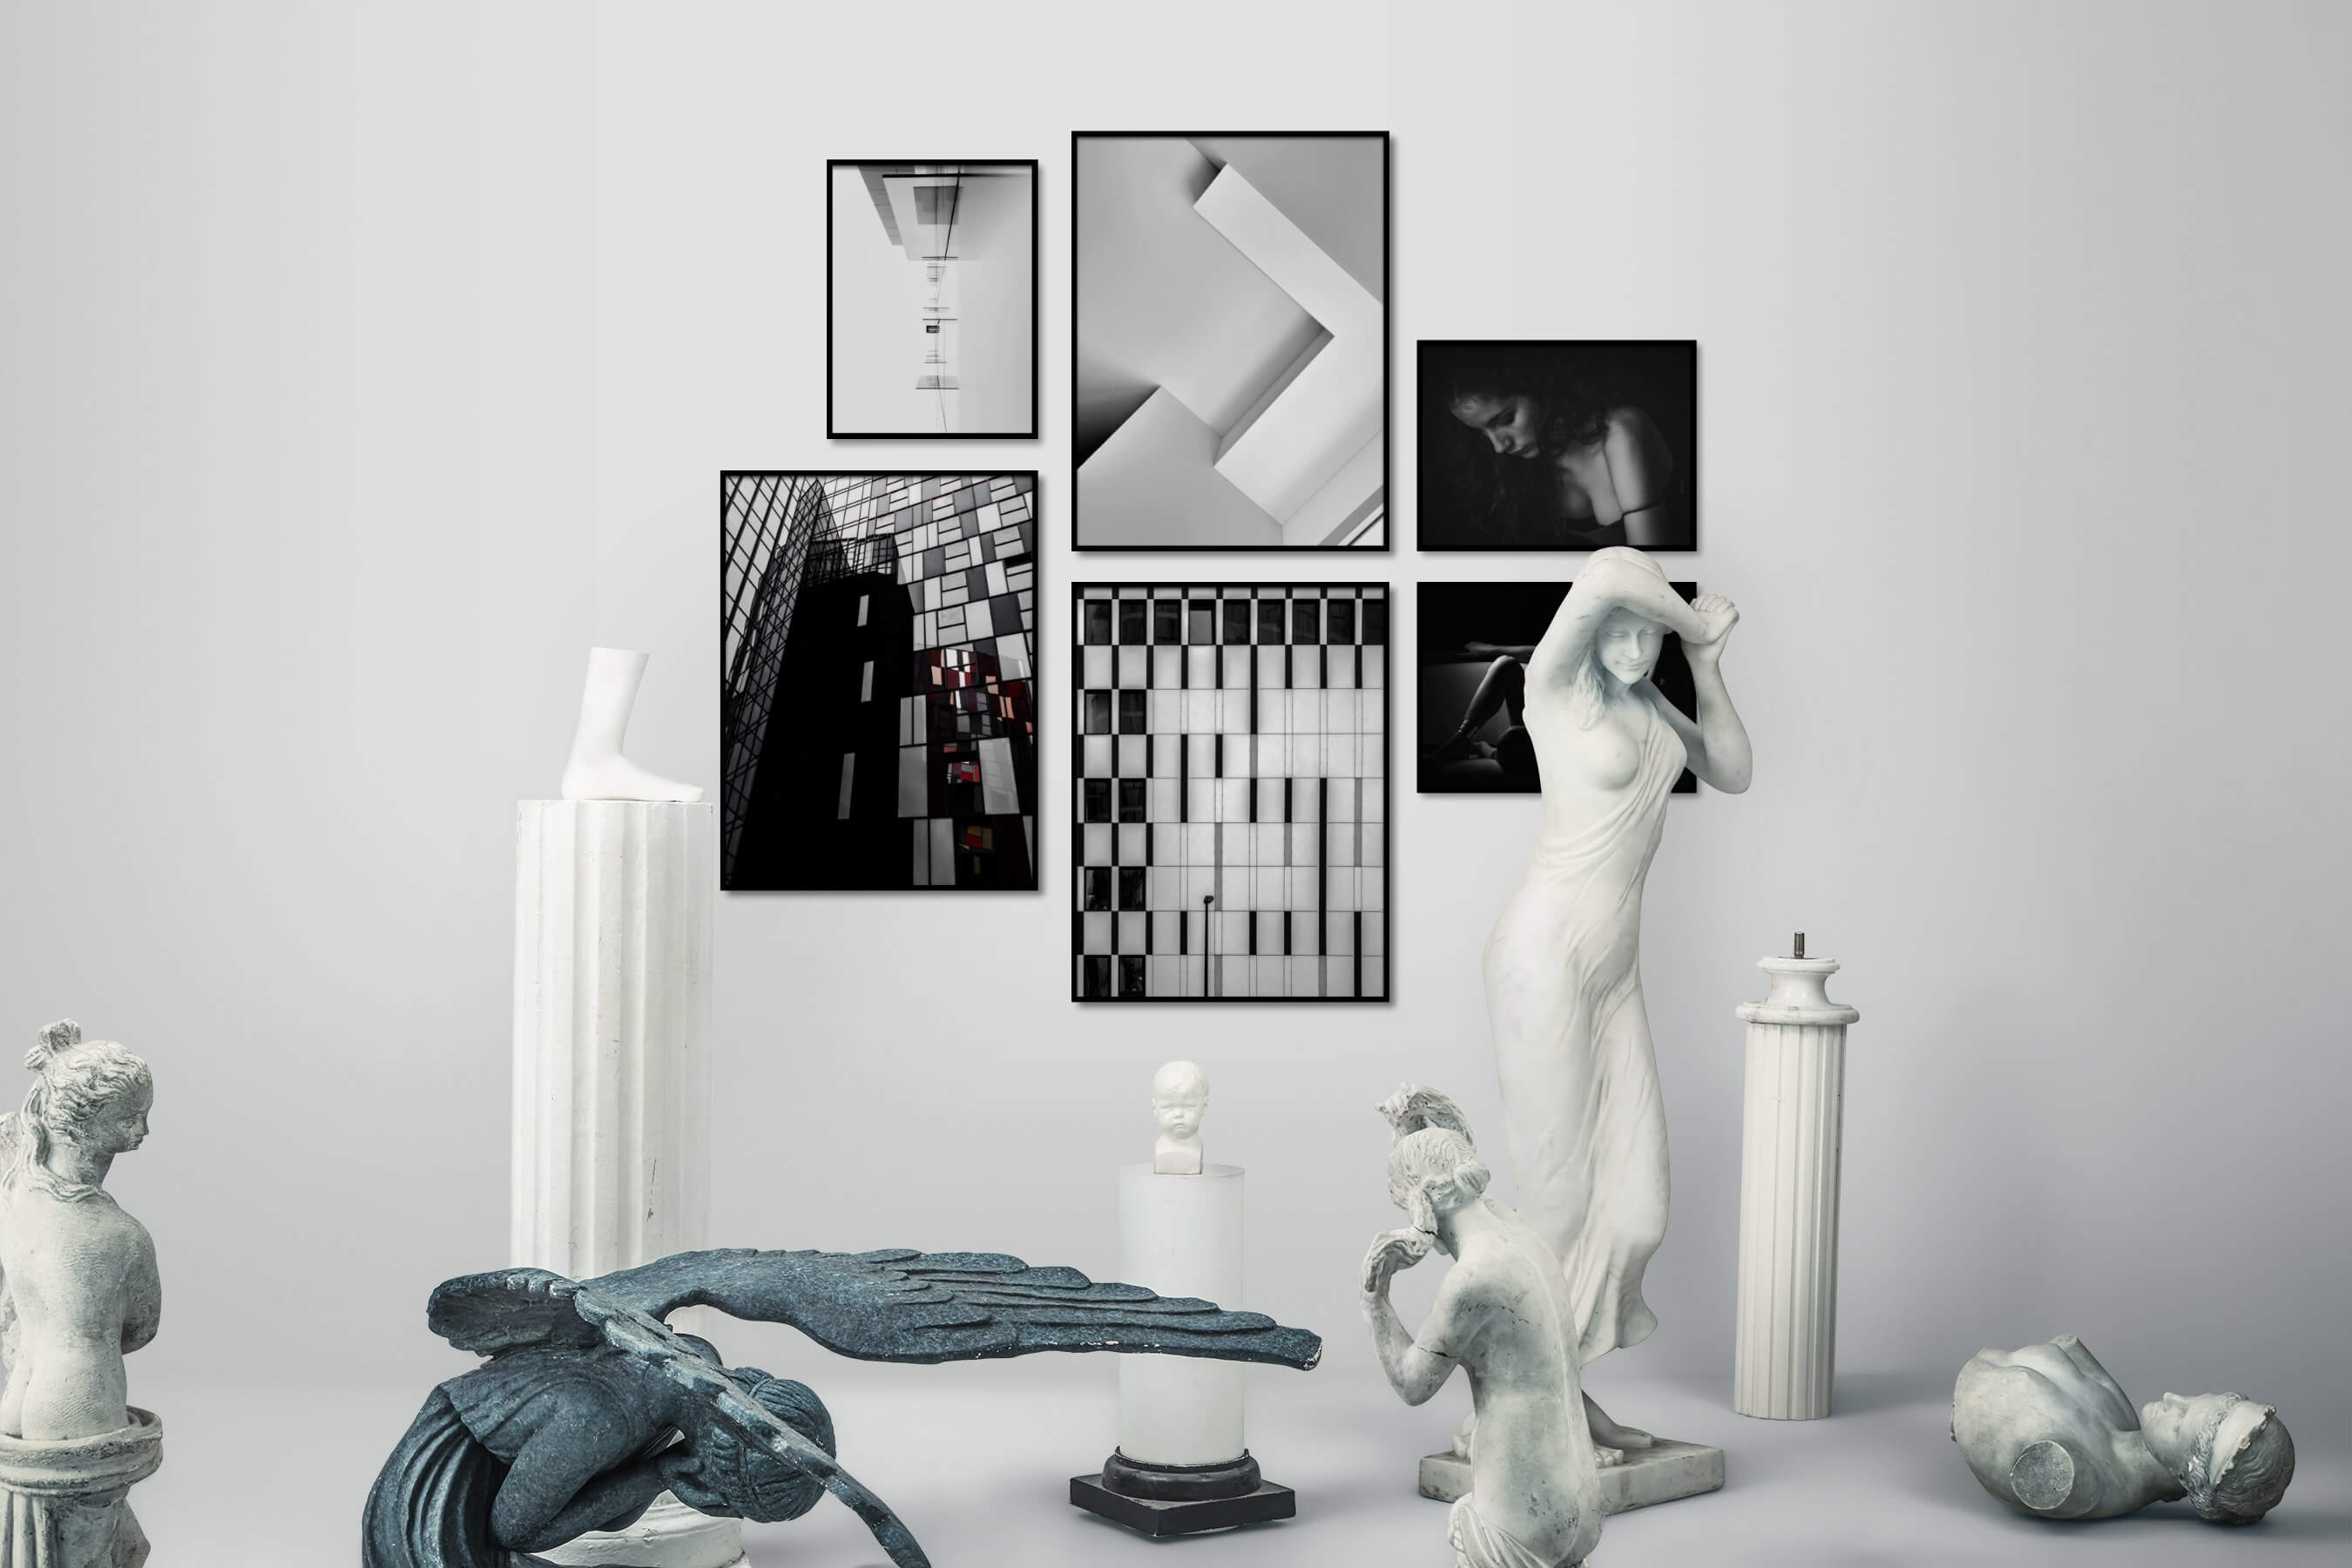 Gallery wall idea with six framed pictures arranged on a wall depicting For the Moderate, Black & White, For the Maximalist, City Life, Fashion & Beauty, and Dark Tones